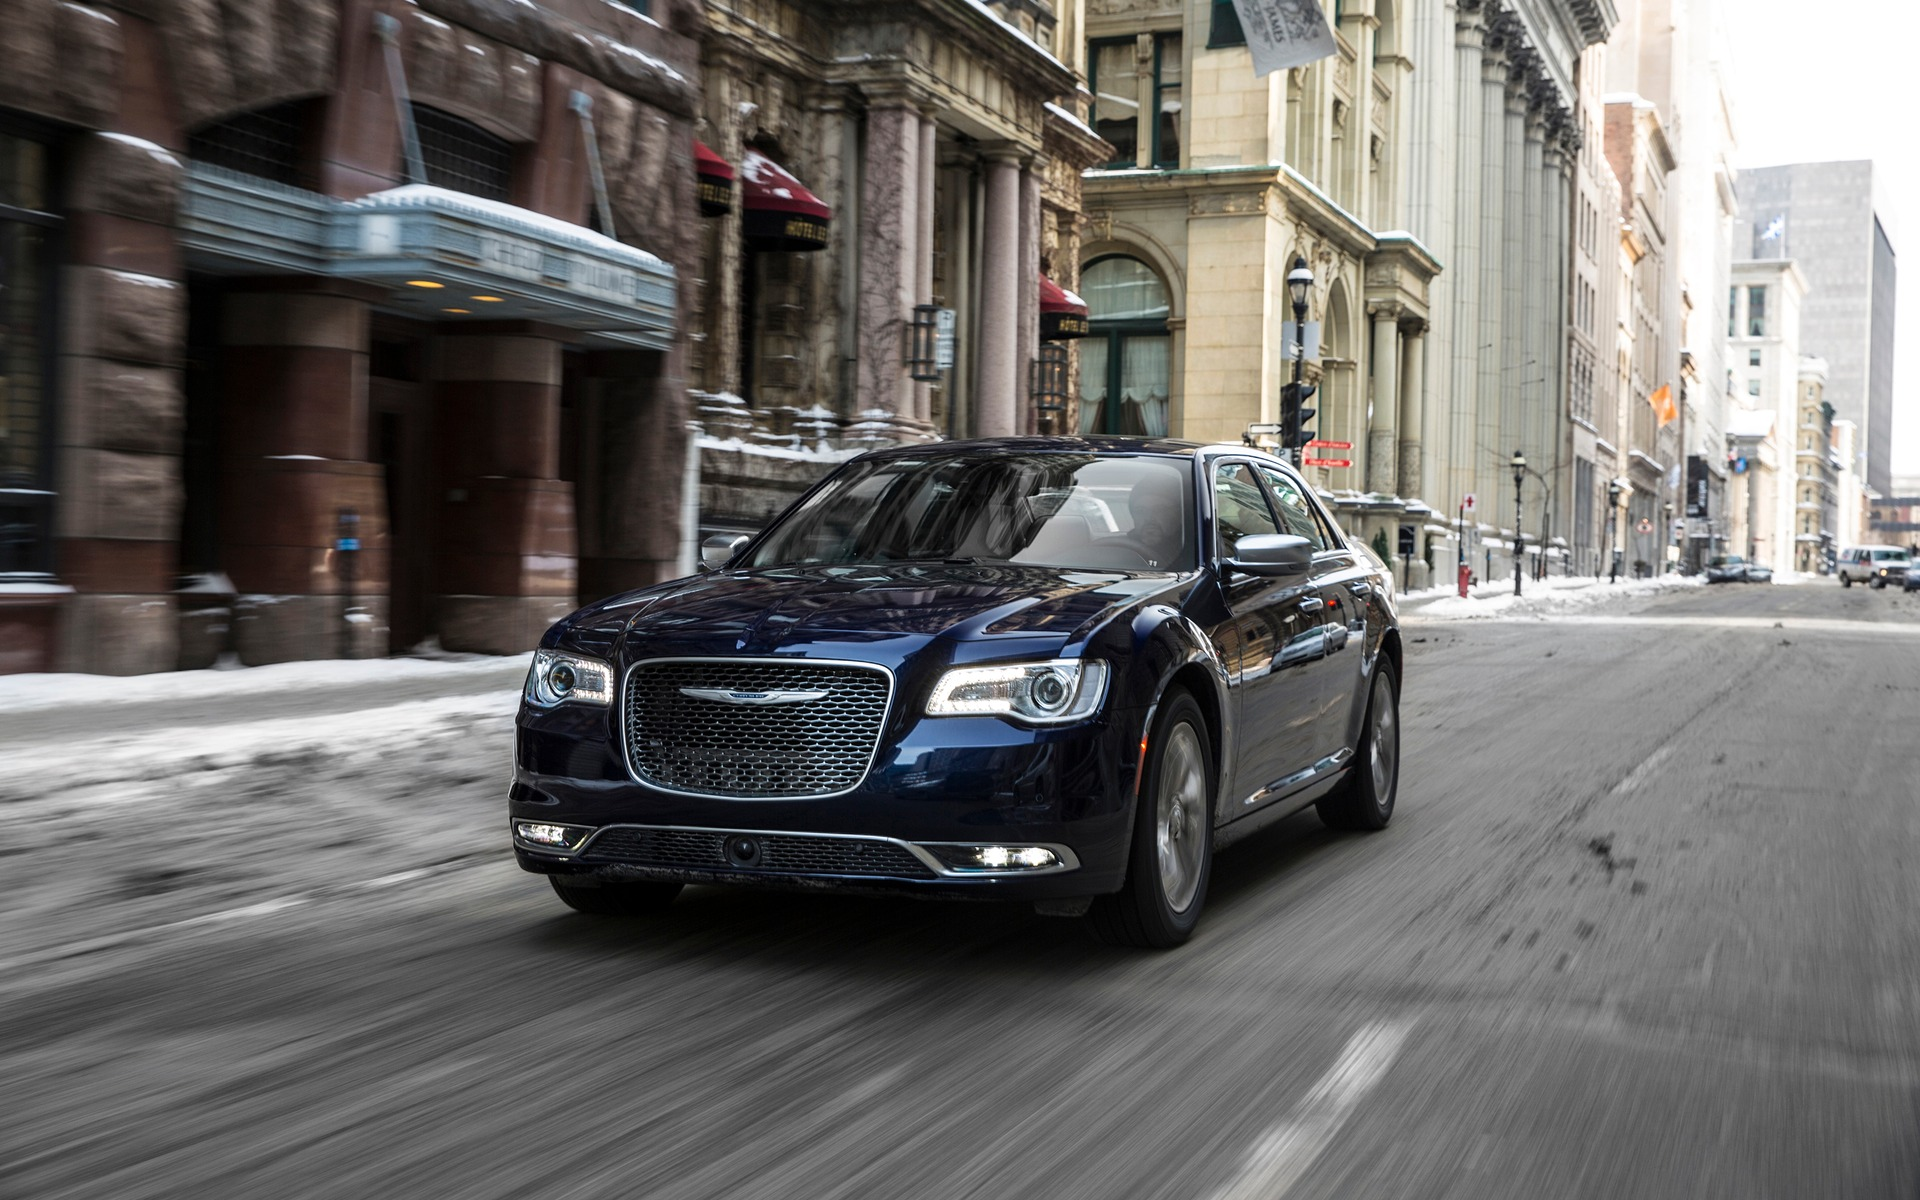 2018 Chrysler 300 - News, reviews, picture galleries and videos - The Car  Guide